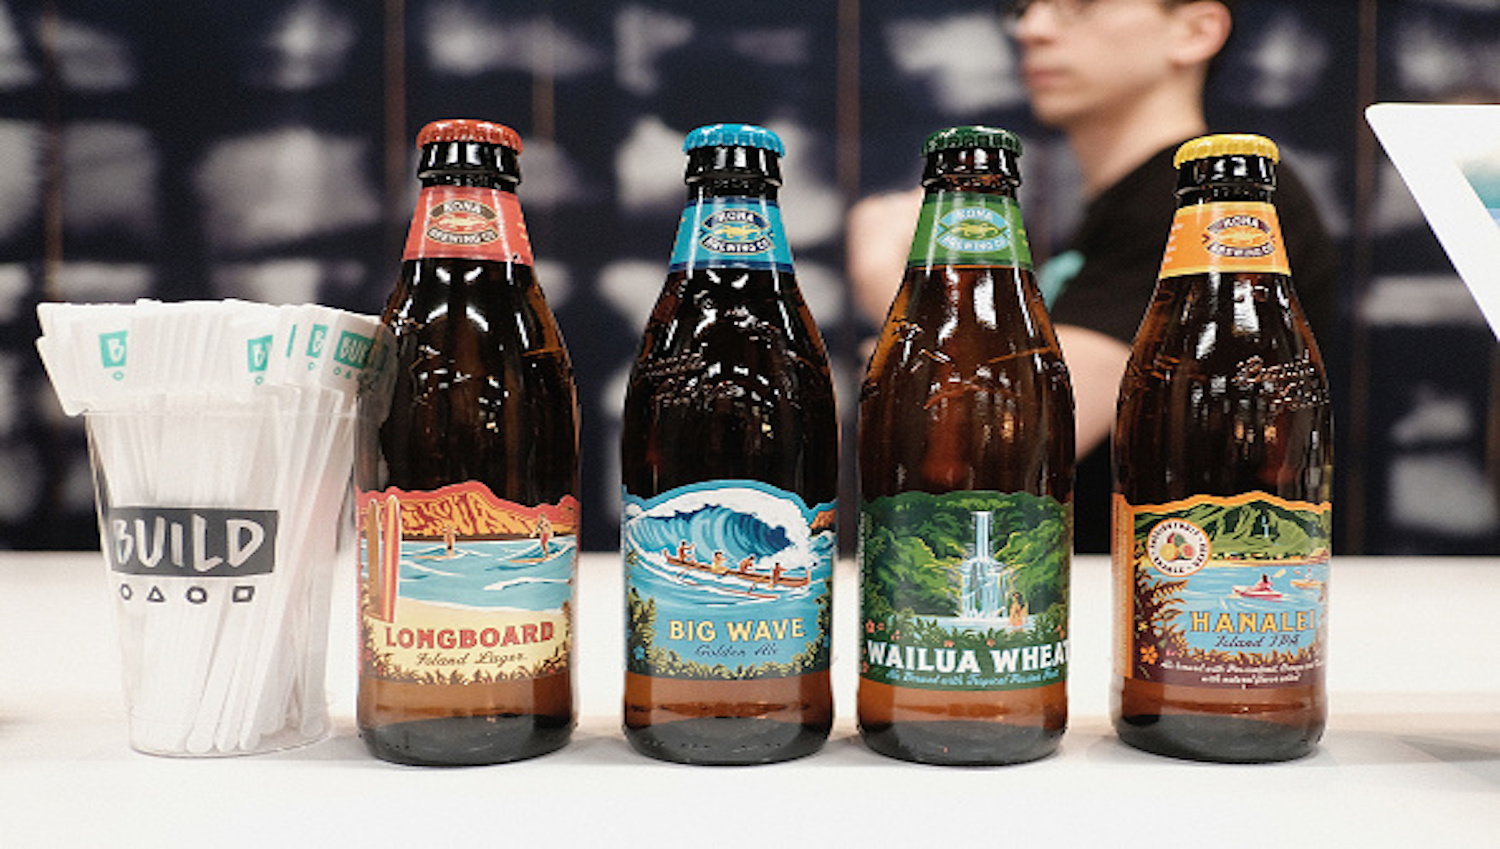 Kona is the Latest Beer Company to be Sued for Deceptive Advertising